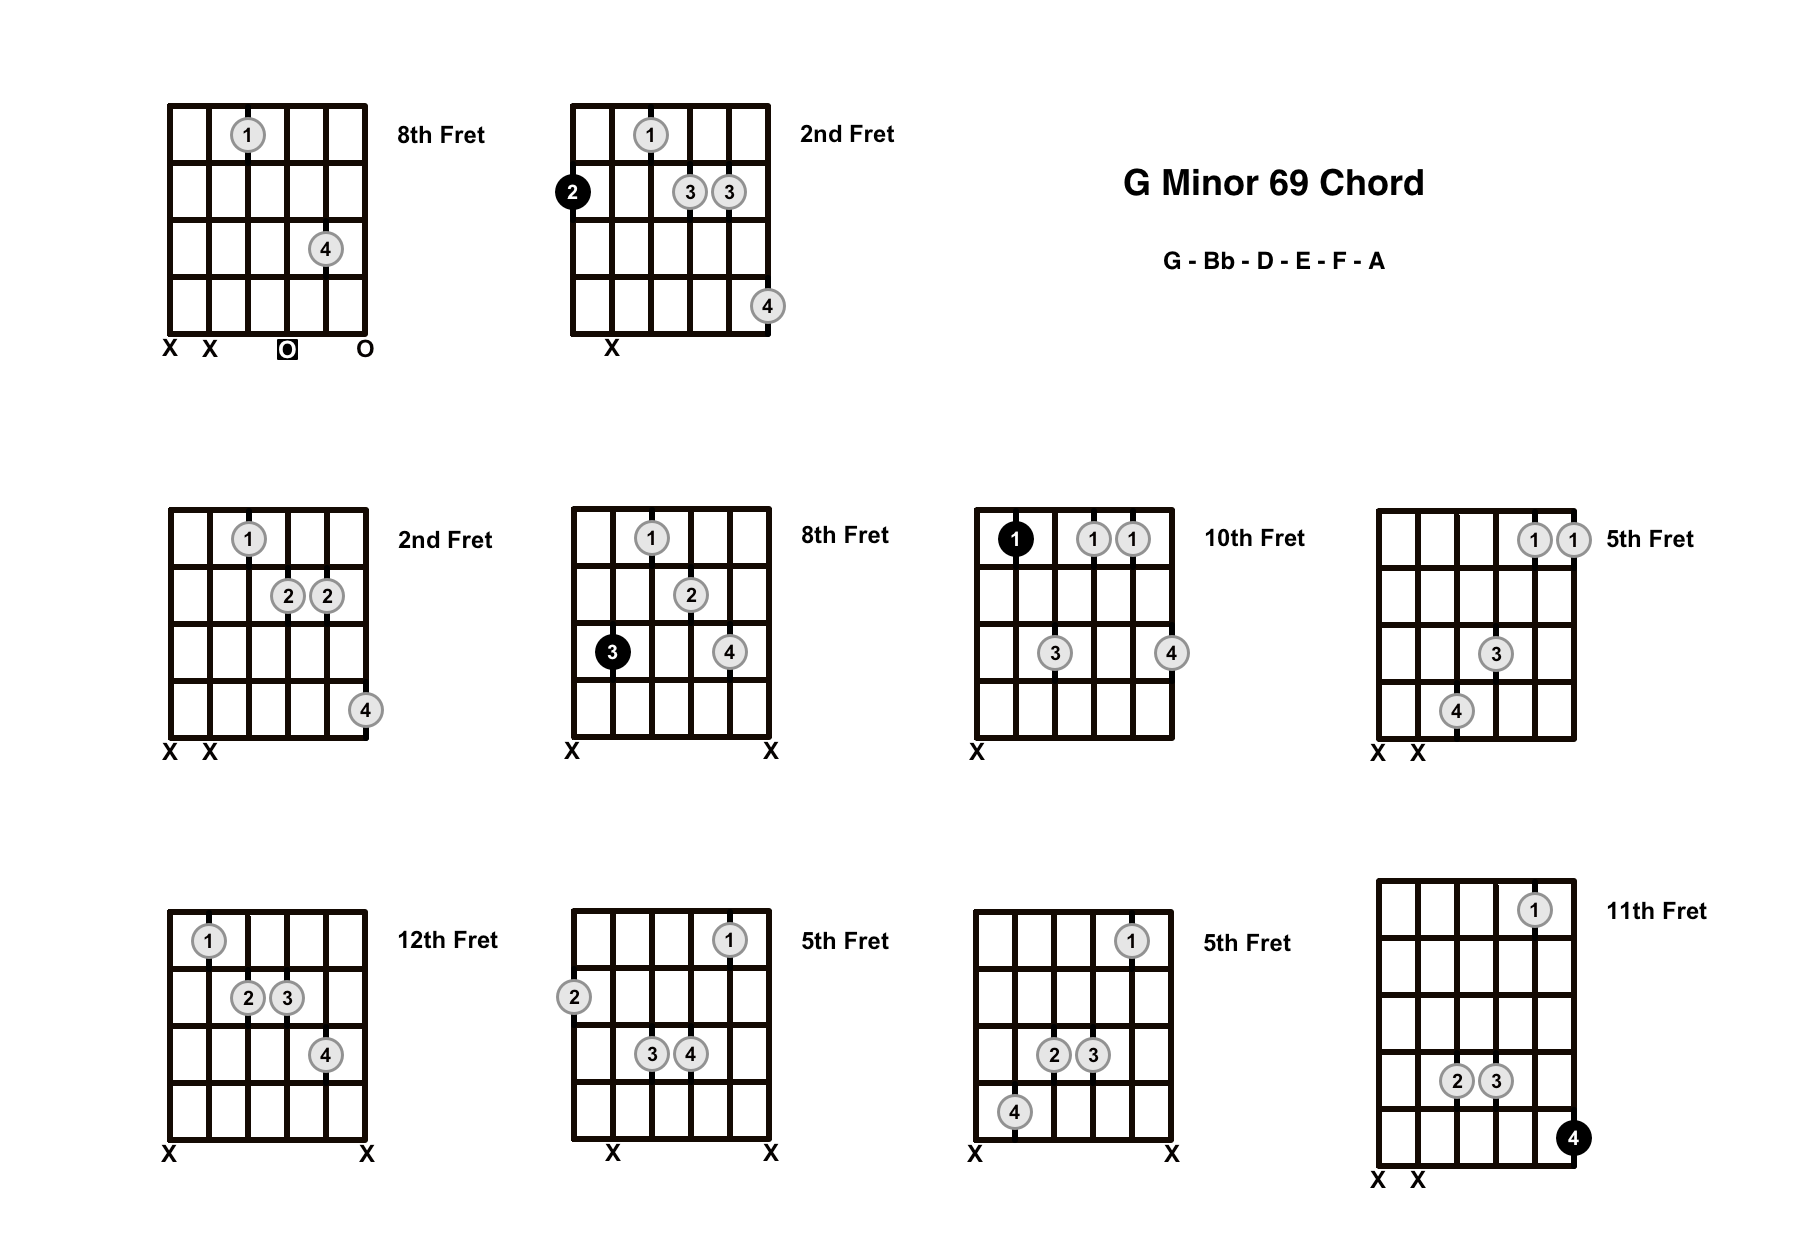 Gm69 Chord On The Guitar (G Minor 69) – Diagrams, Finger Positions and Theory